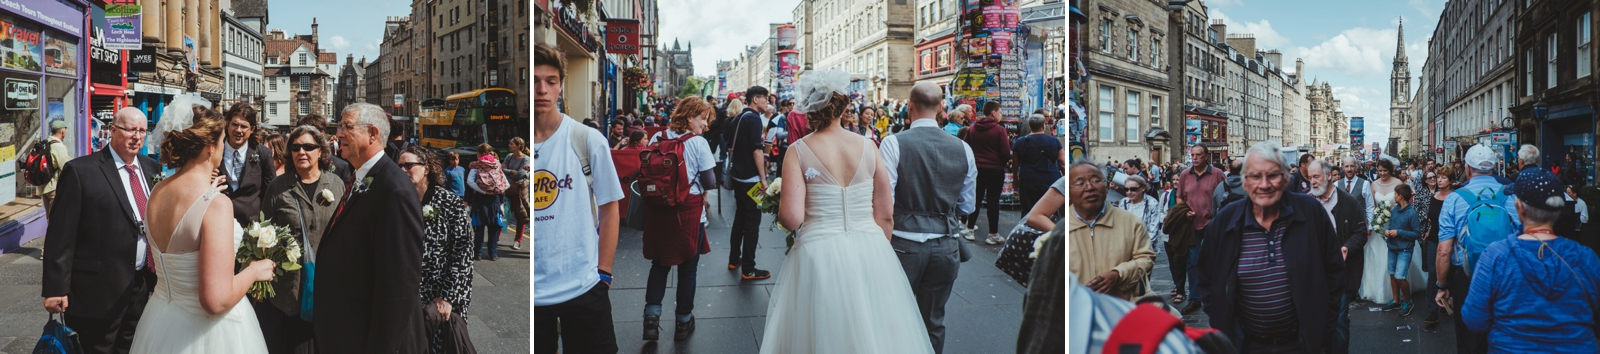 Angela___Andy_s_Edinburgh_elopement_by_Barry_Forshaw_0288.jpg